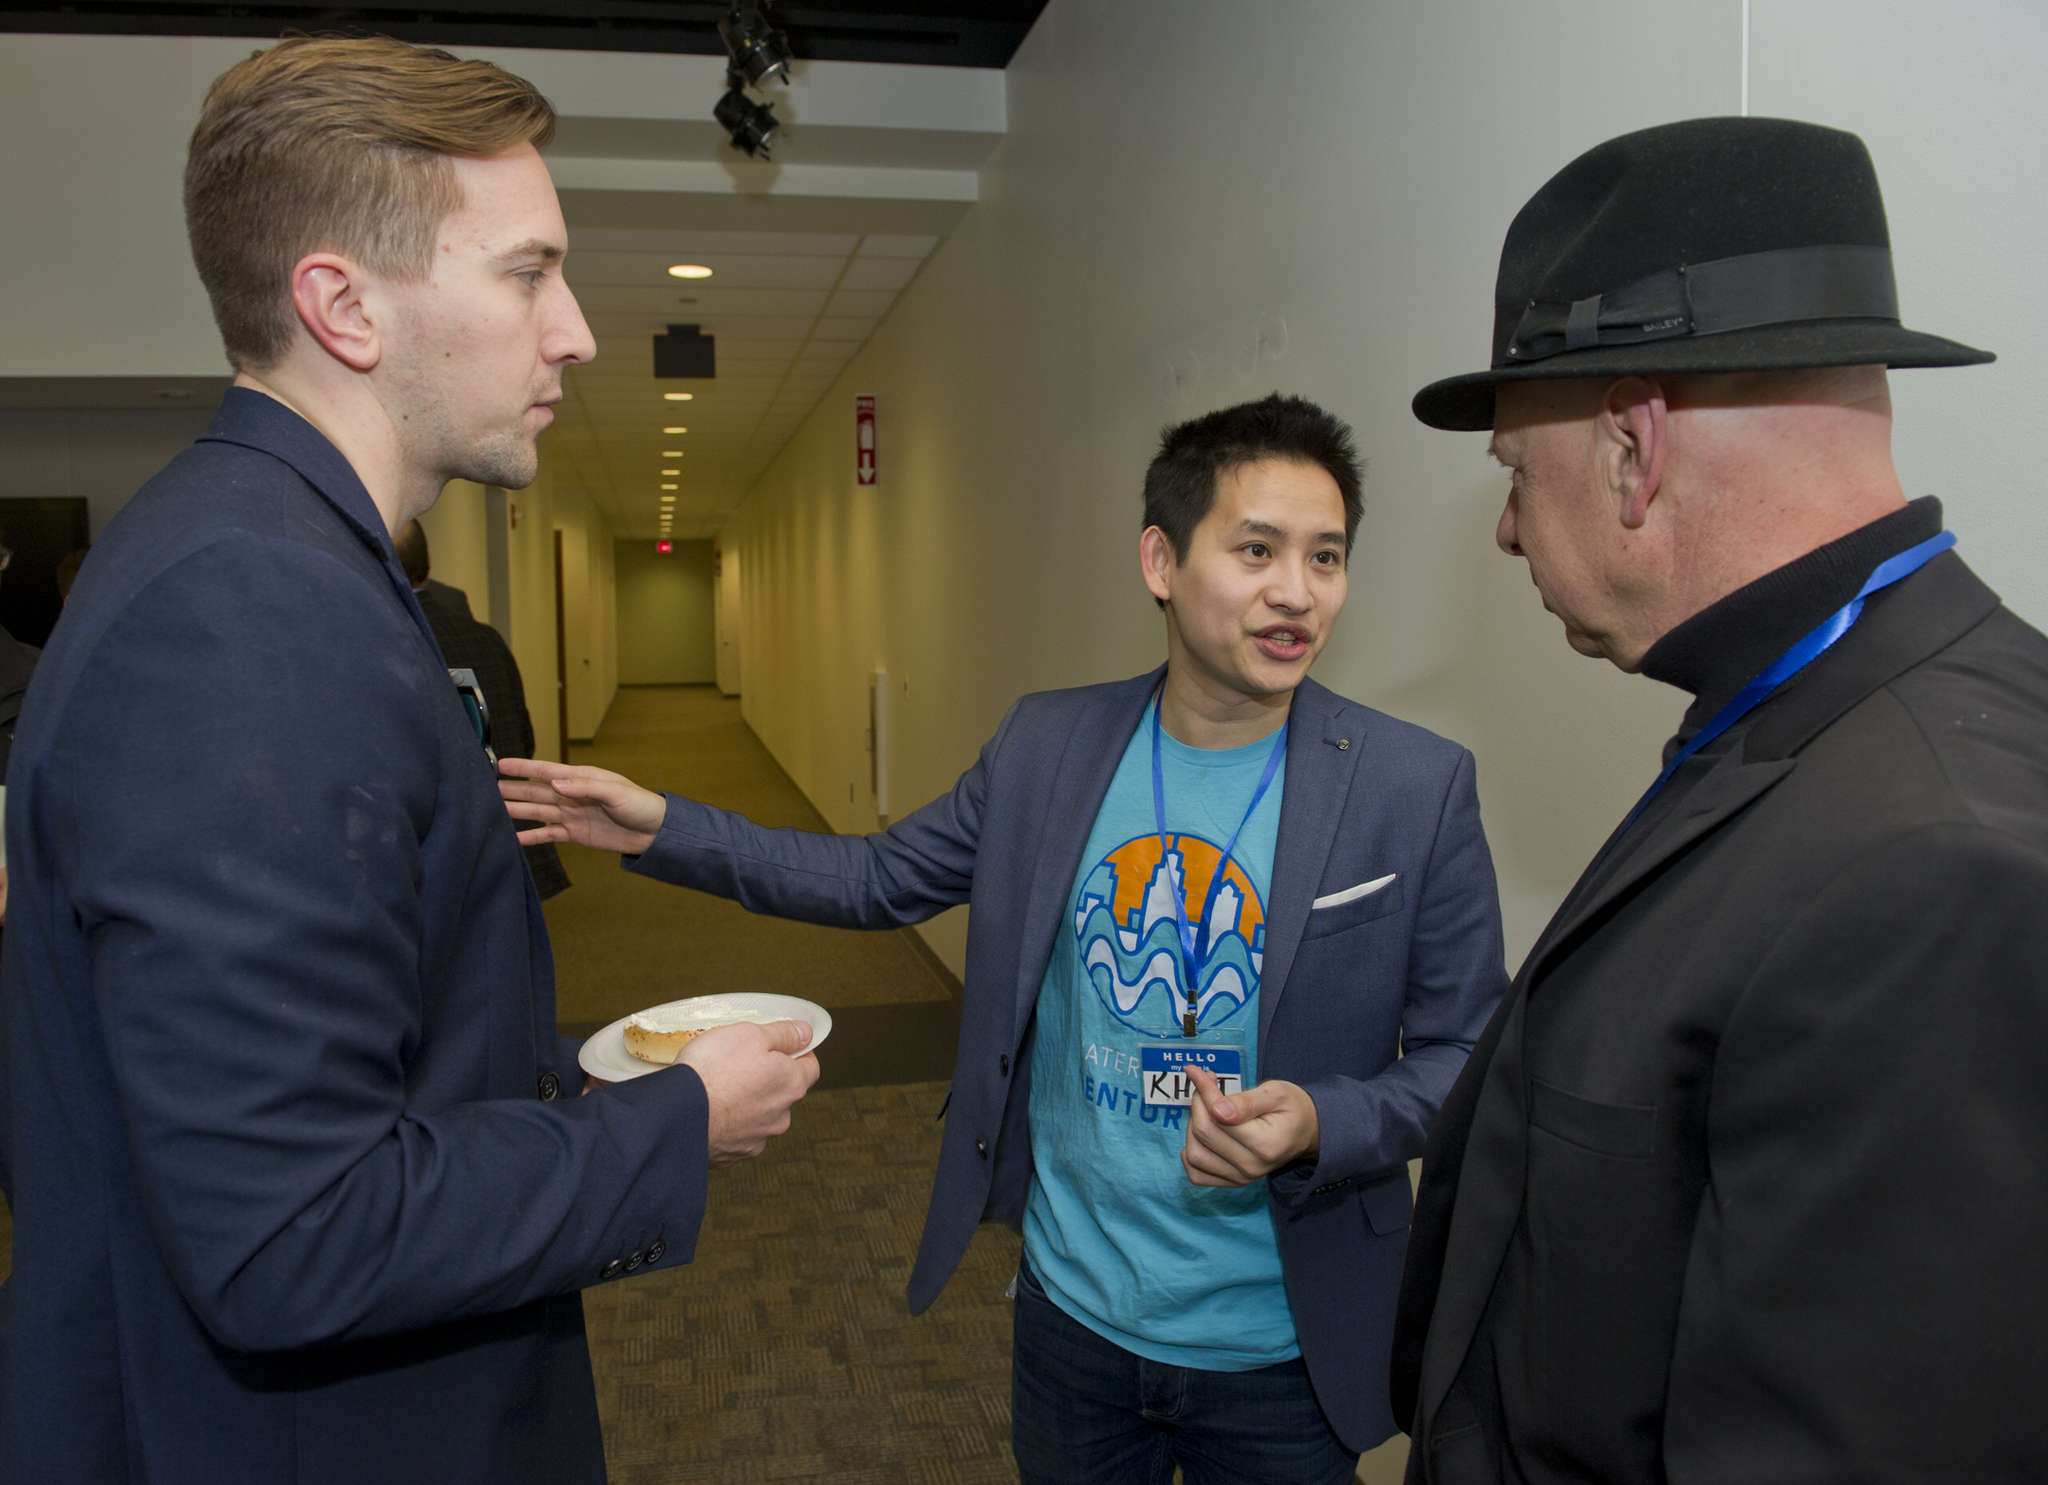 Johnathan Grzybowski, left, and Khai Tran, founders of Waterfront Ventures, speak with attendee Zave Smith, right, co-founder of the Xhilarate design firm in Philadelphia, during the UP Conference at the Waterfront Technology Center in Camden.